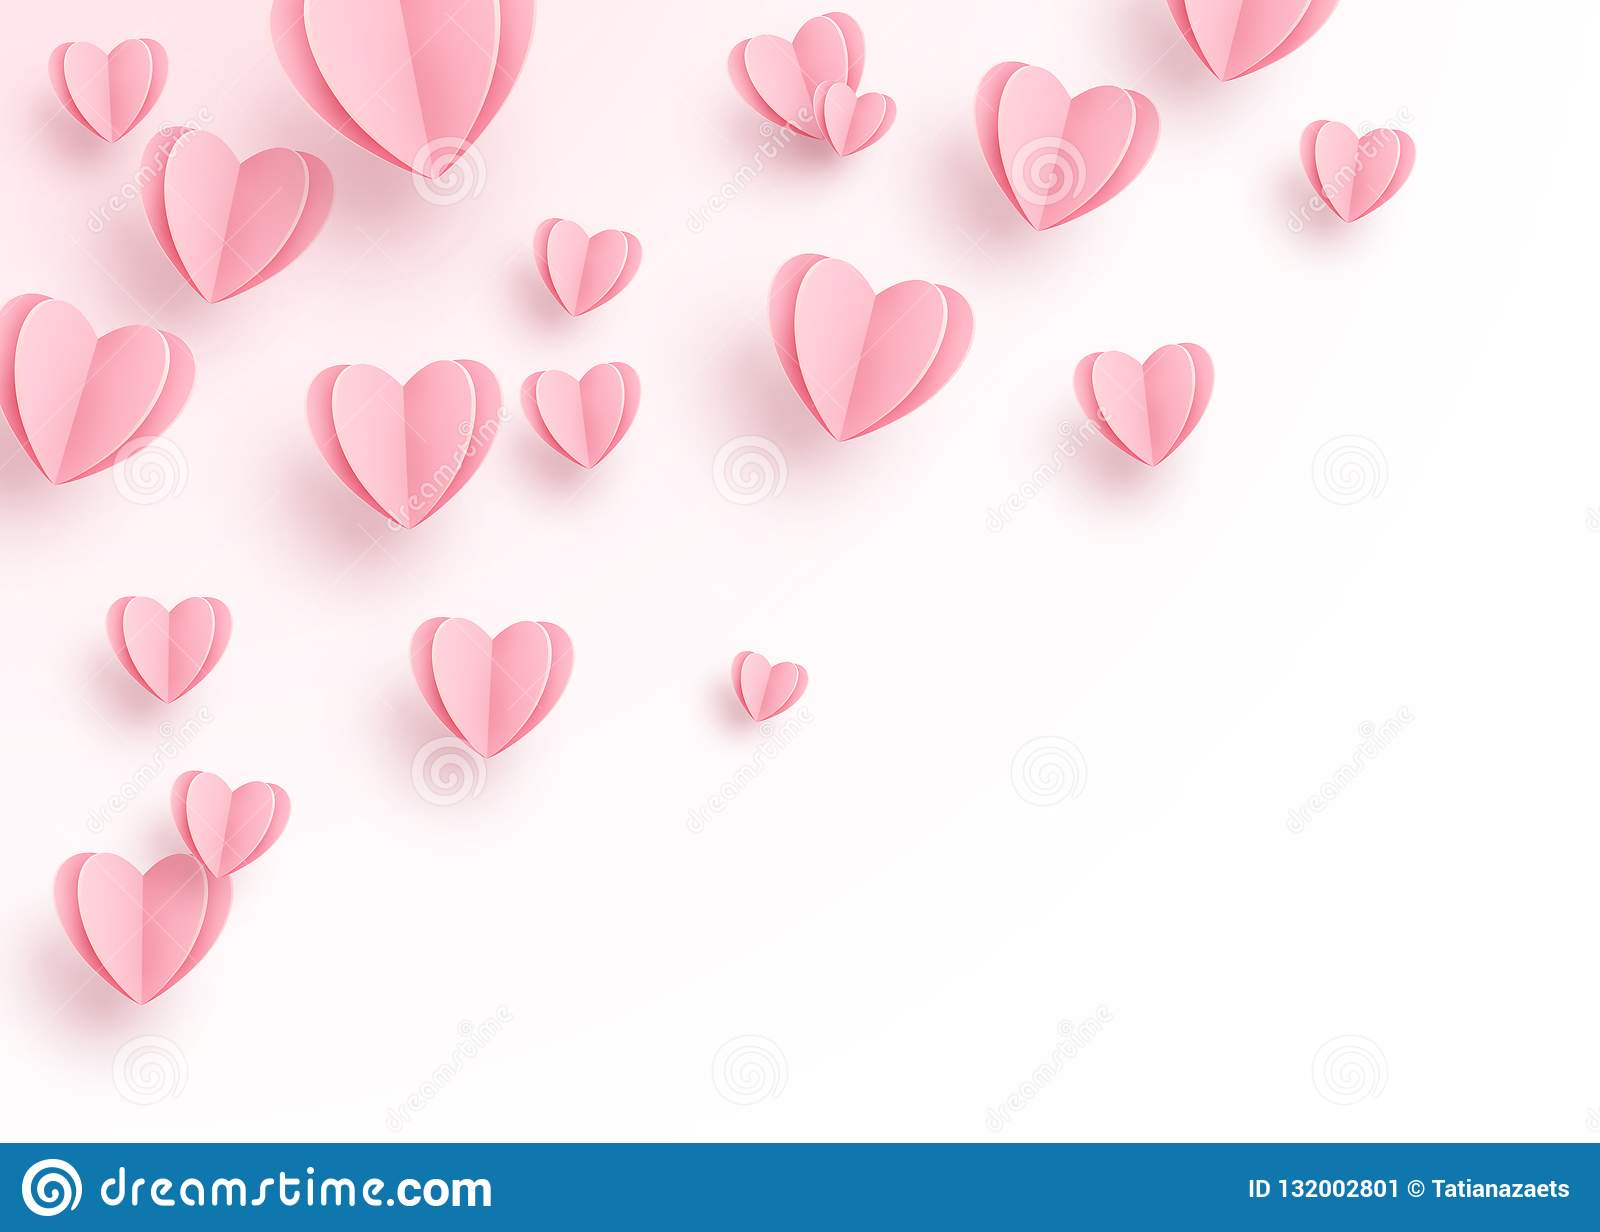 Heart Background With Light Pink Paper Cut Hearts. Love